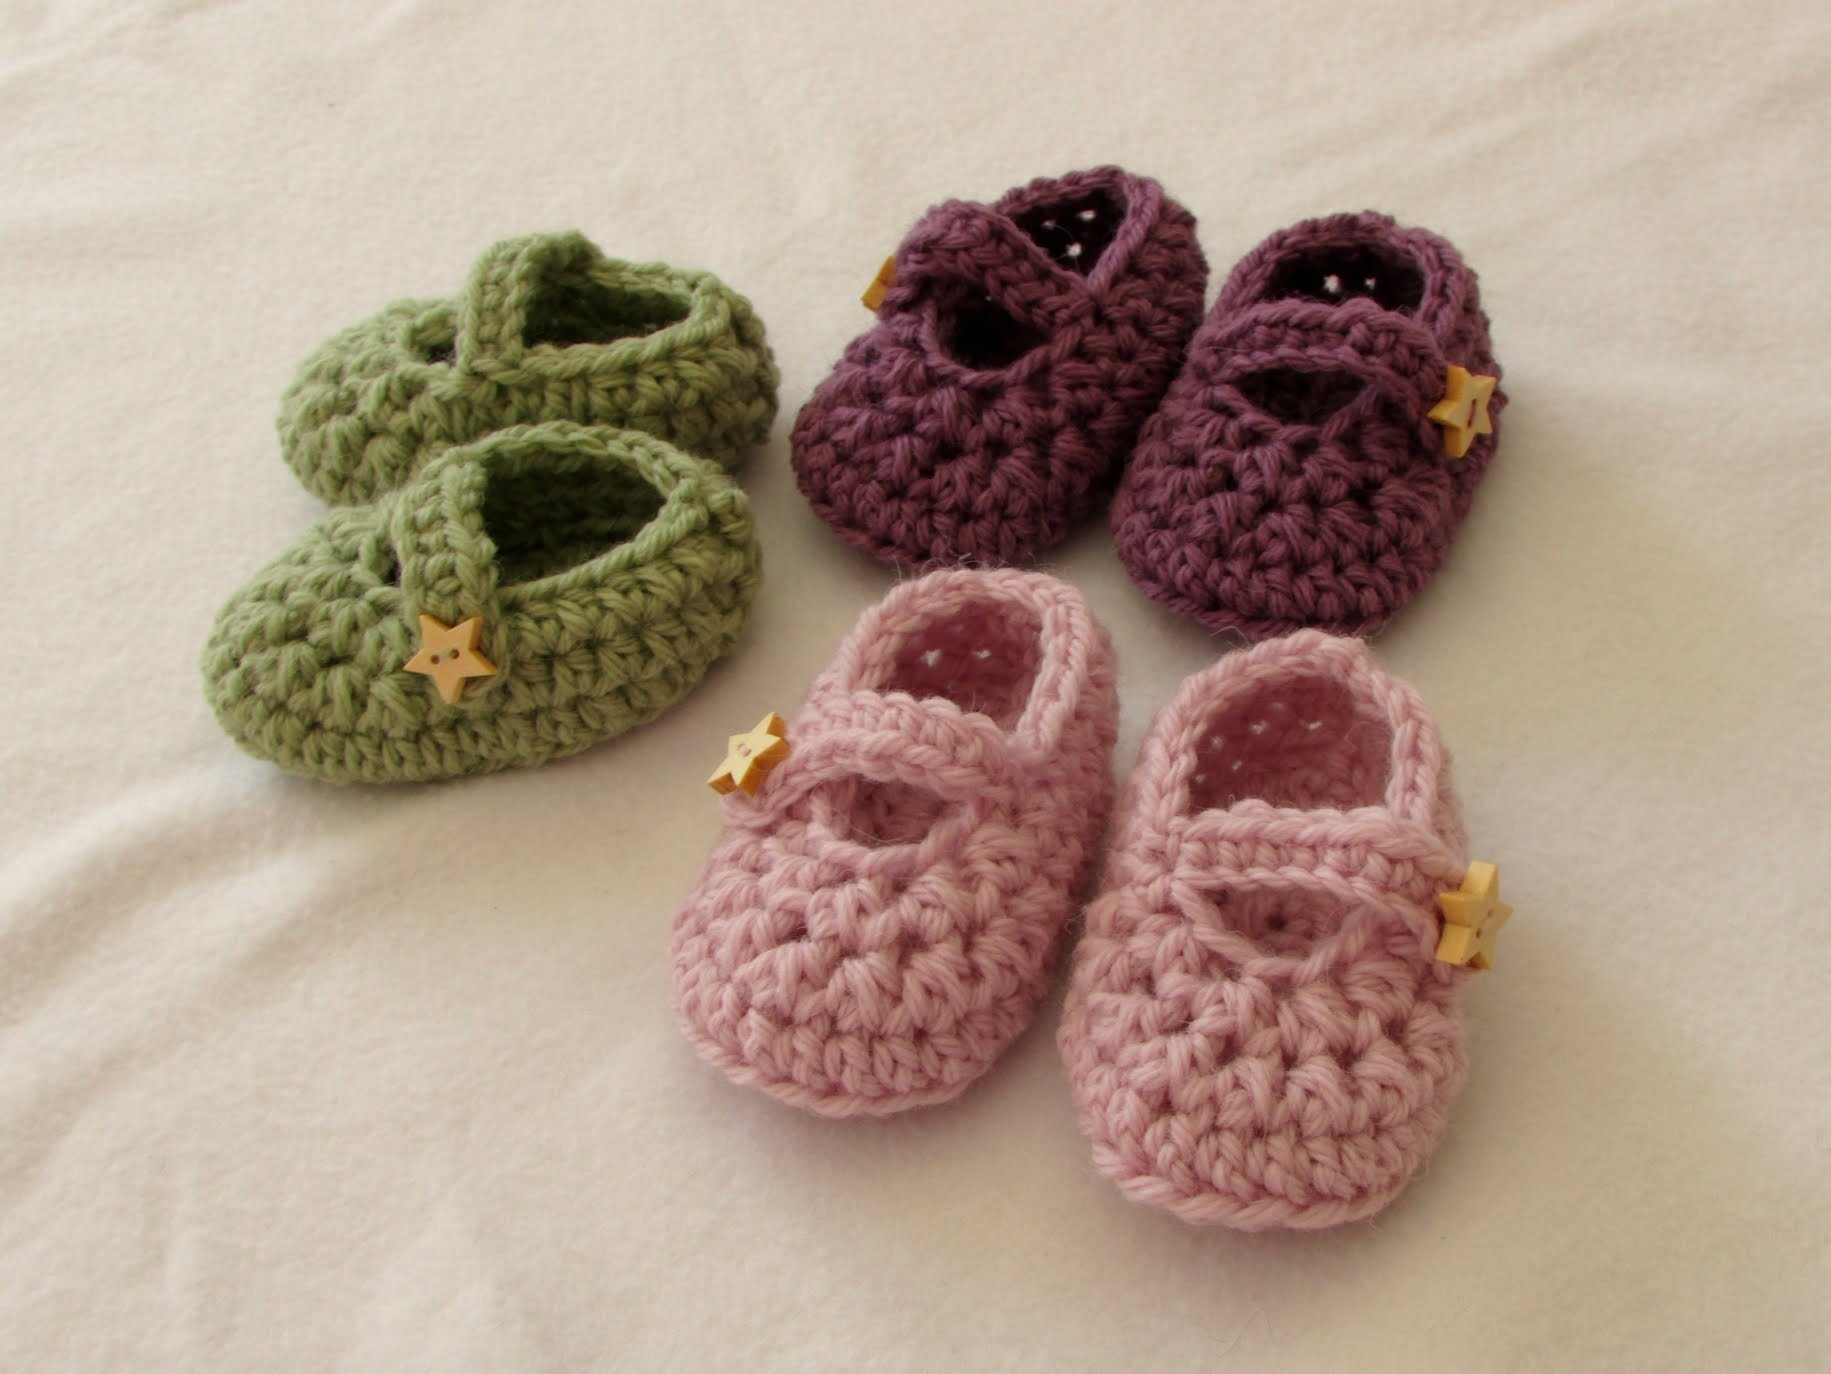 Best Of Free Crochet Patterns for Beginners Baby Booties Crochet for Baby Of New 46 Pictures Crochet for Baby